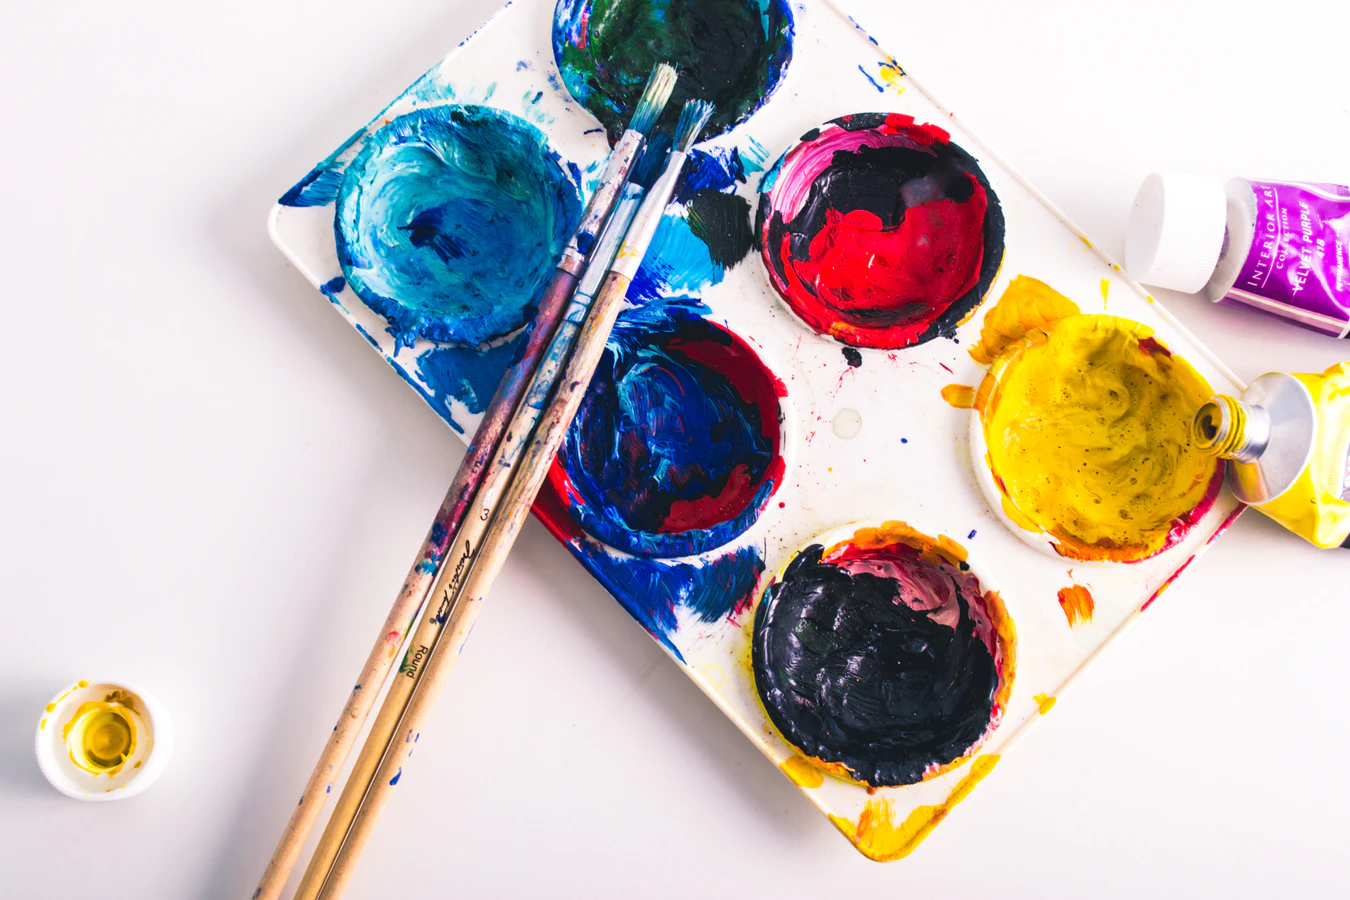 Best Hobbies for Technical Writers